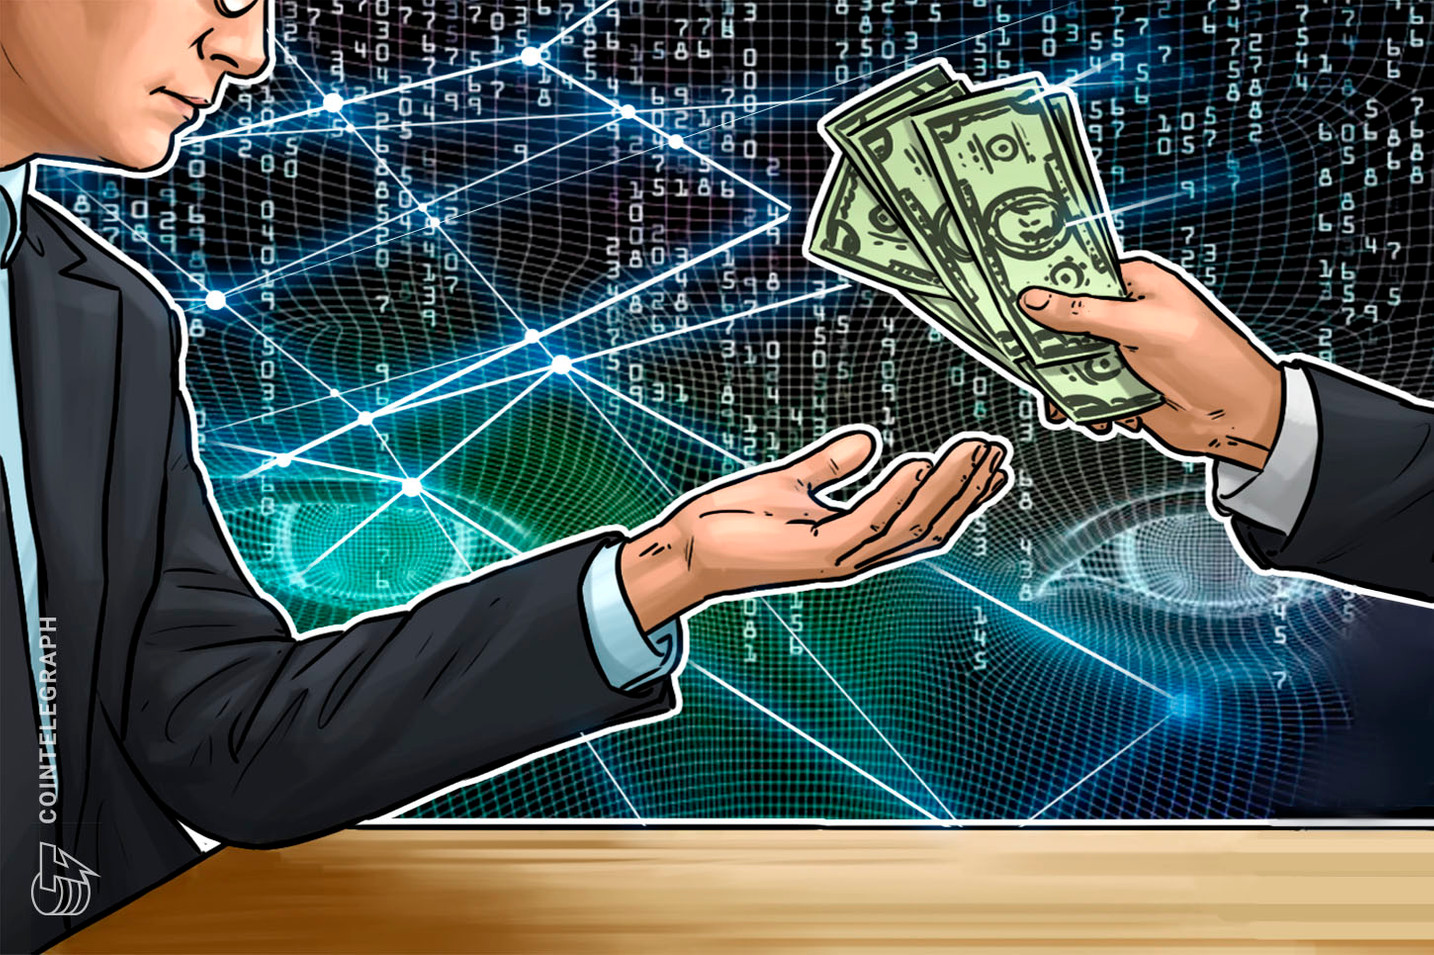 US Department of Homeland Security Awards $143K Grant to Blockchain Firm